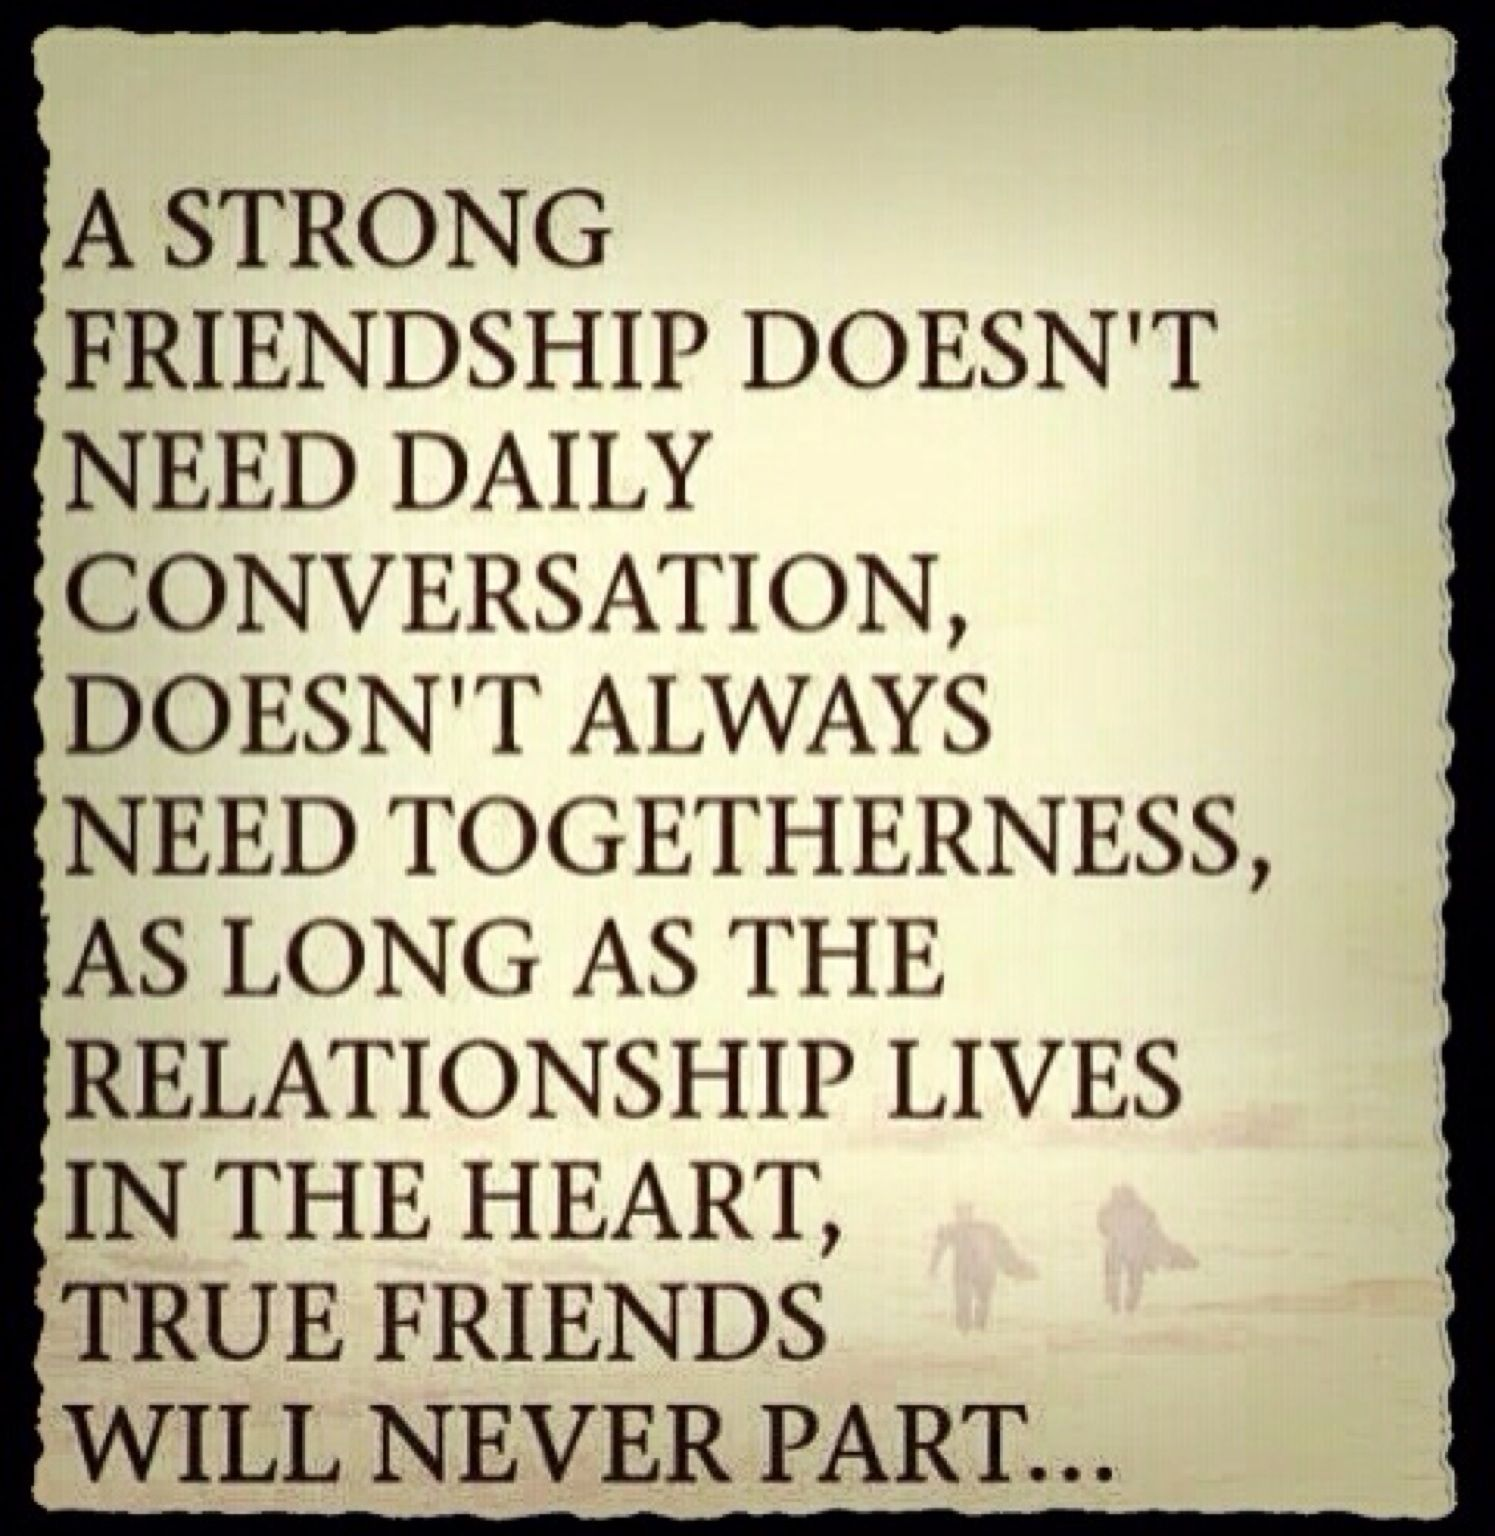 Quotes About True Friendship And Fake Friends Friendship  Quotes From Social Media  Pinterest  Friendship